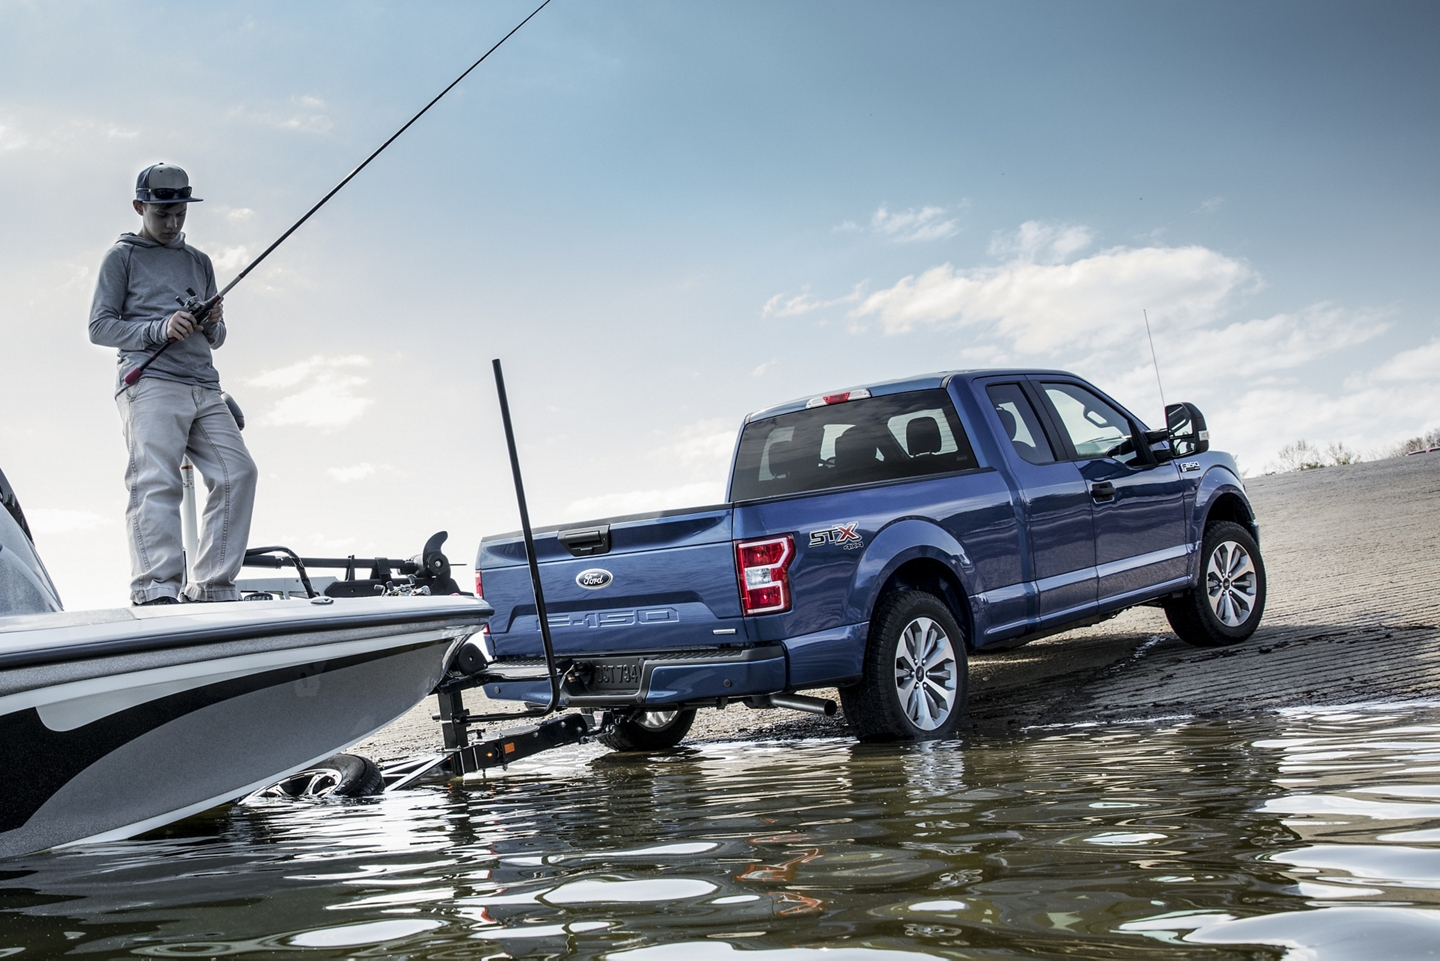 2020 Ford F-150 unloading boat into water